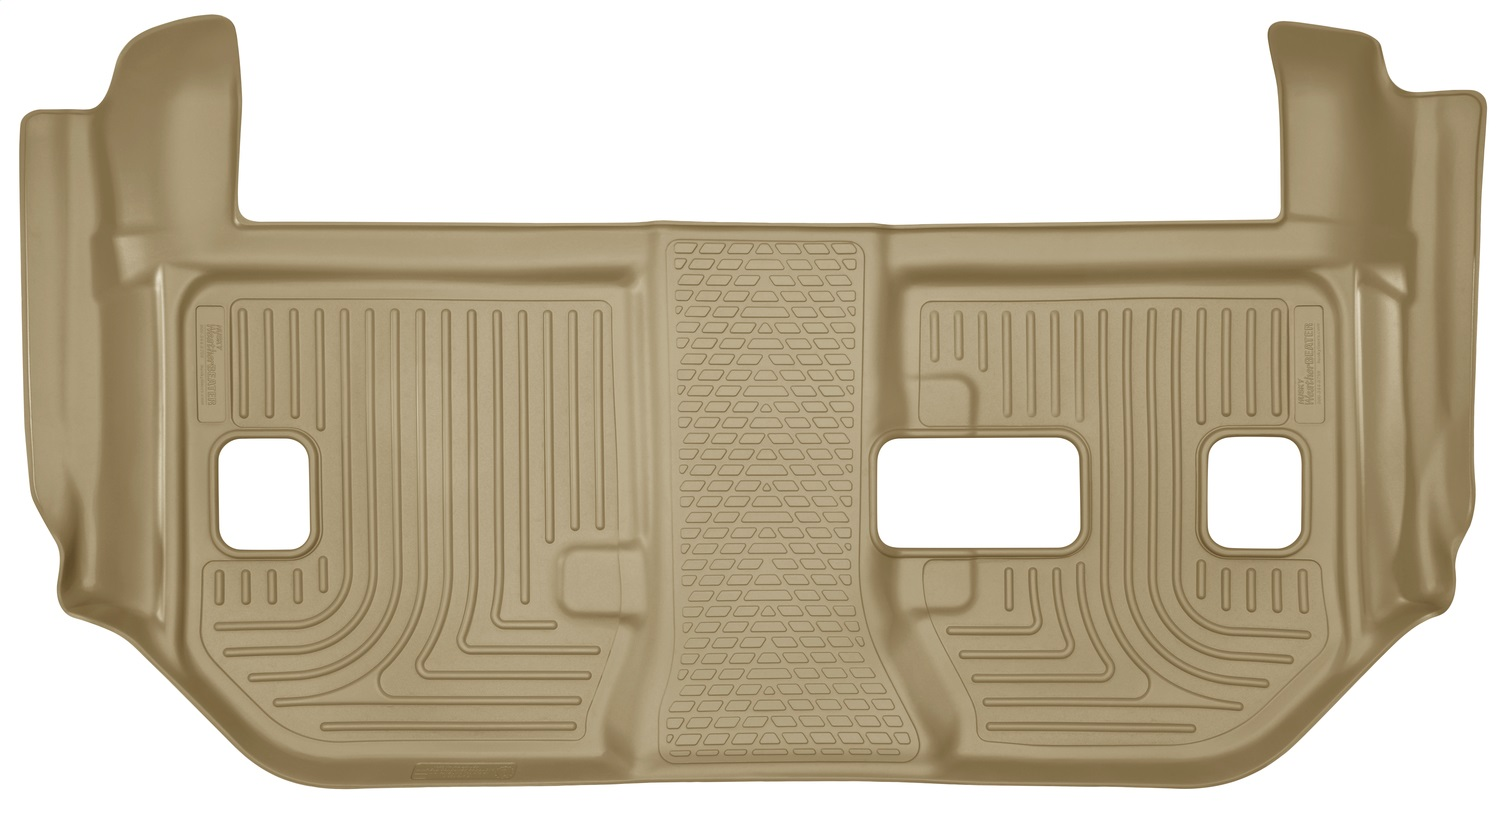 Husky Liners Liners 19293 WeatherBeater Floor Liner  Tan  1 pc.  Fits Vehicles w/2nd Row Bench Seating  Does Not Include Installation Kit at Sears.com